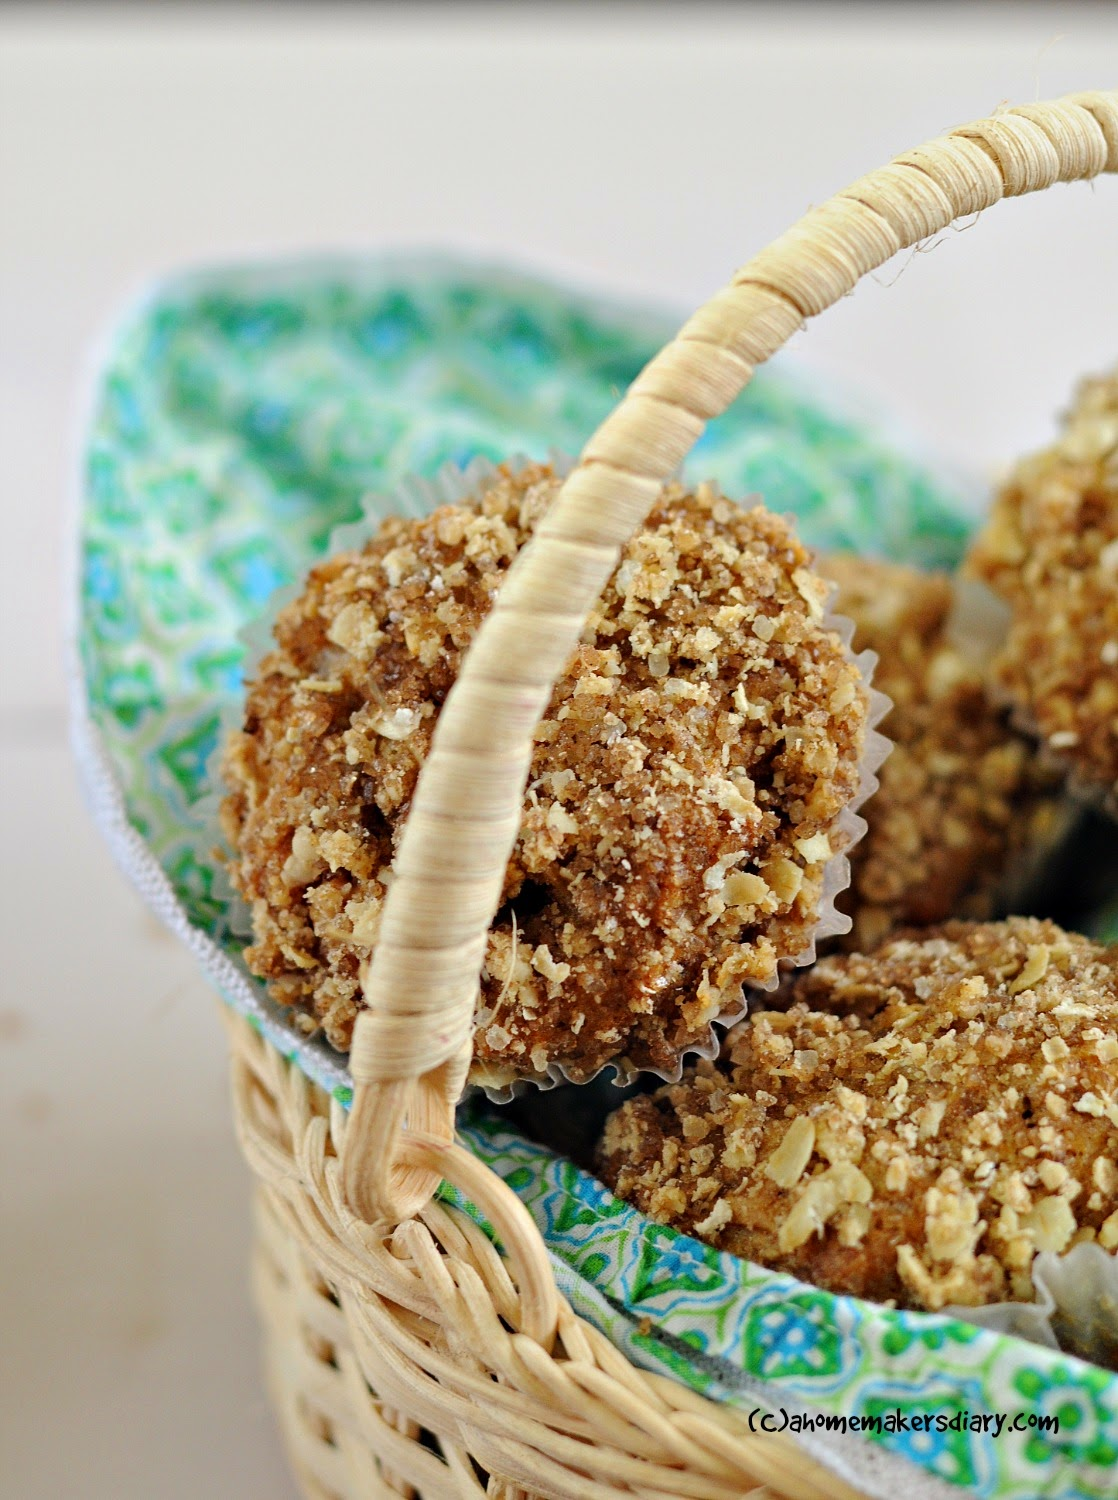 ... Homemaker's Diary: Spiced Whole grain Apple cake with streusel topping